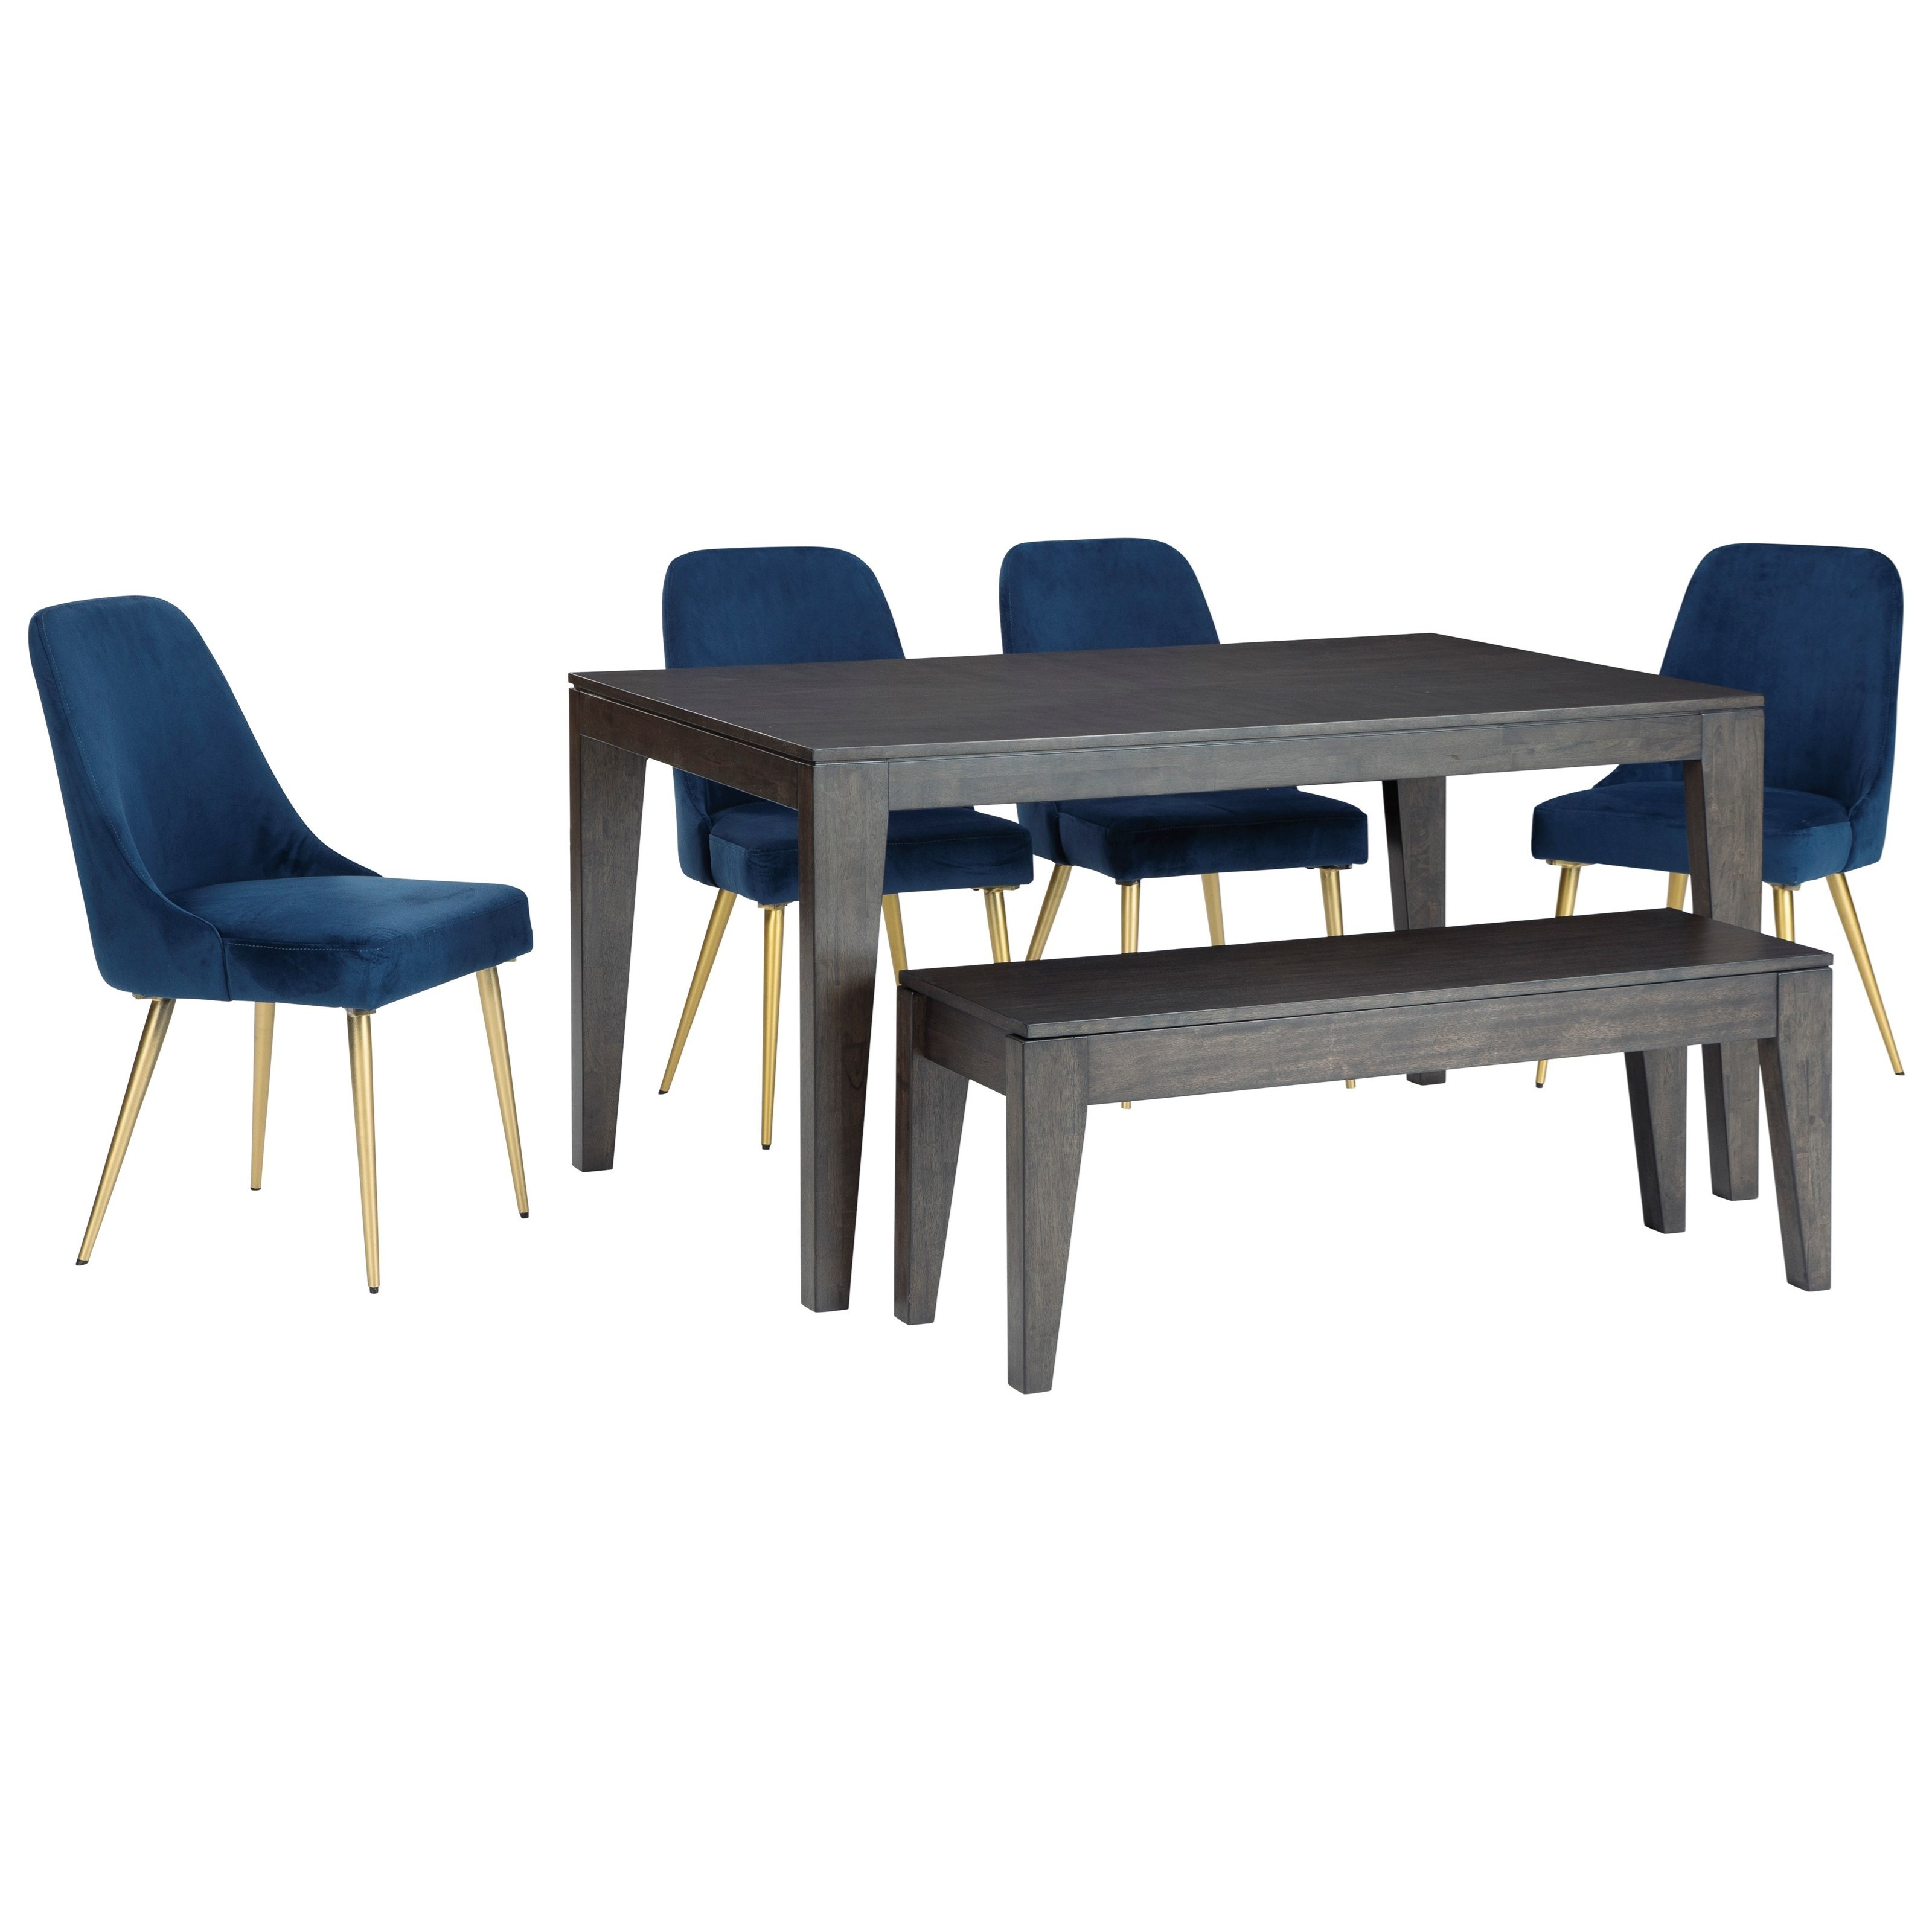 Trishcott 6-Piece Table and Chair Set with Bench by Ashley Furniture at Household Furniture